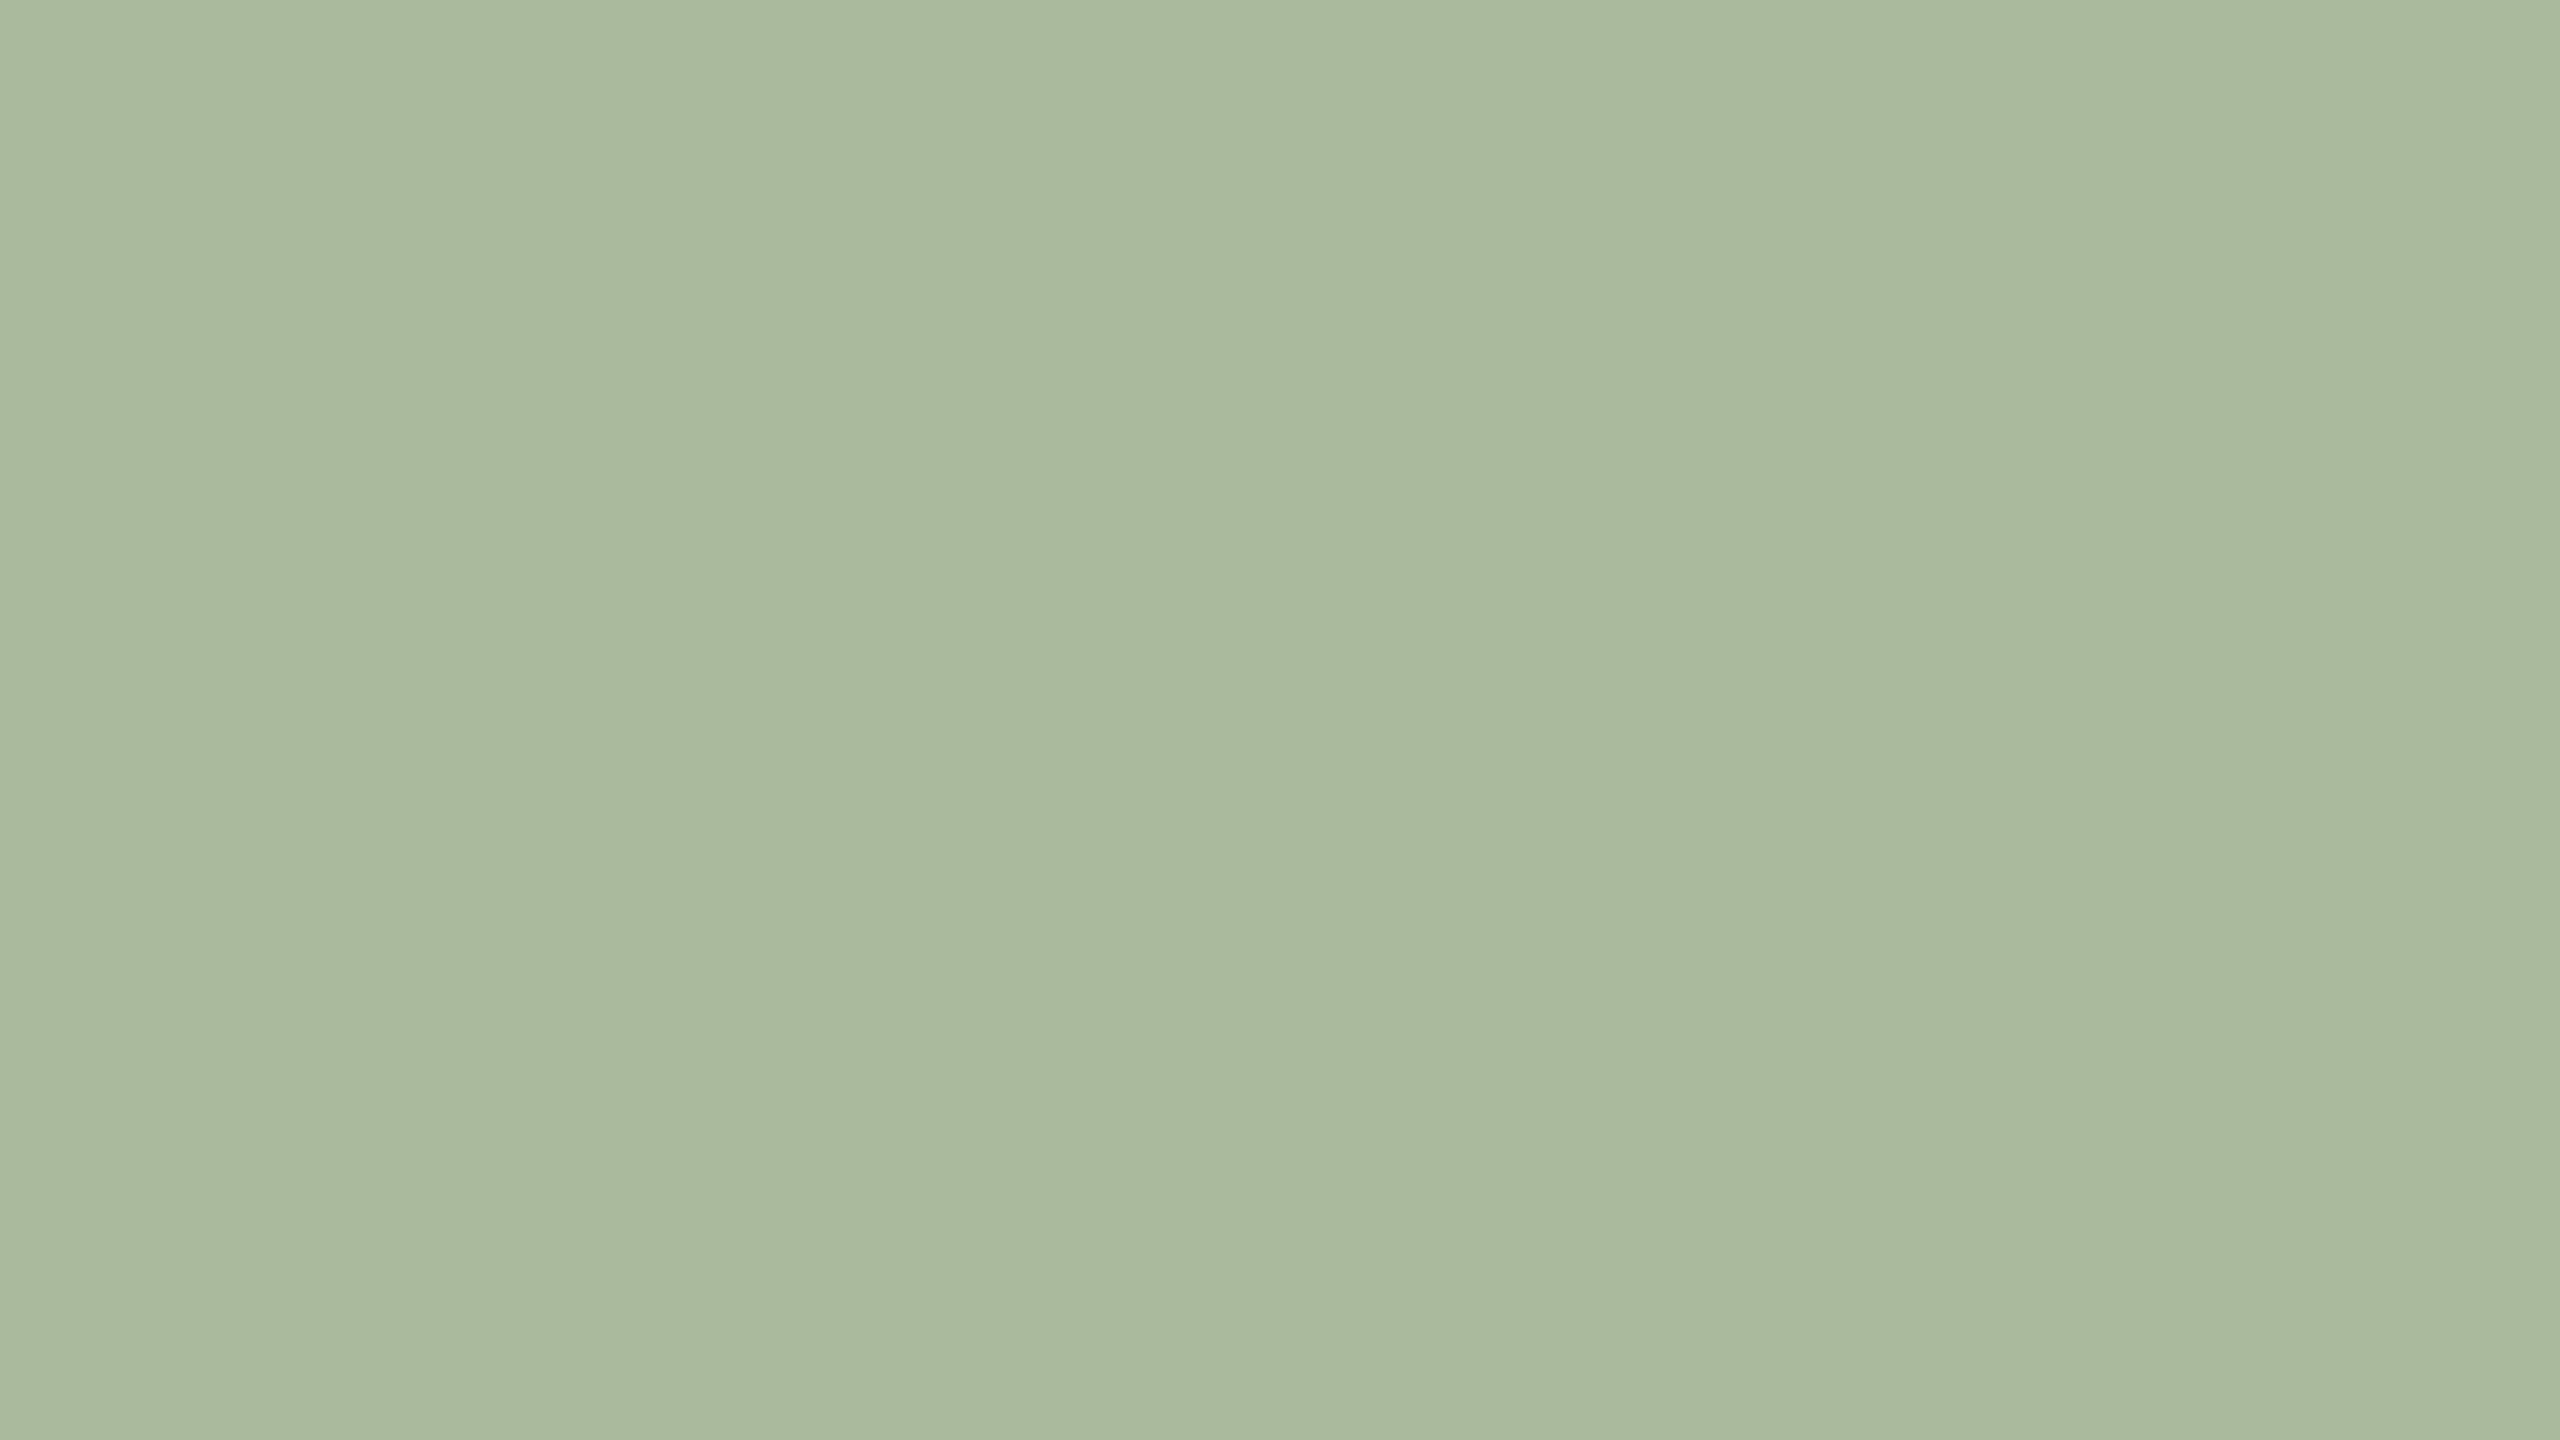 2560x1440 Laurel Green Solid Color Background